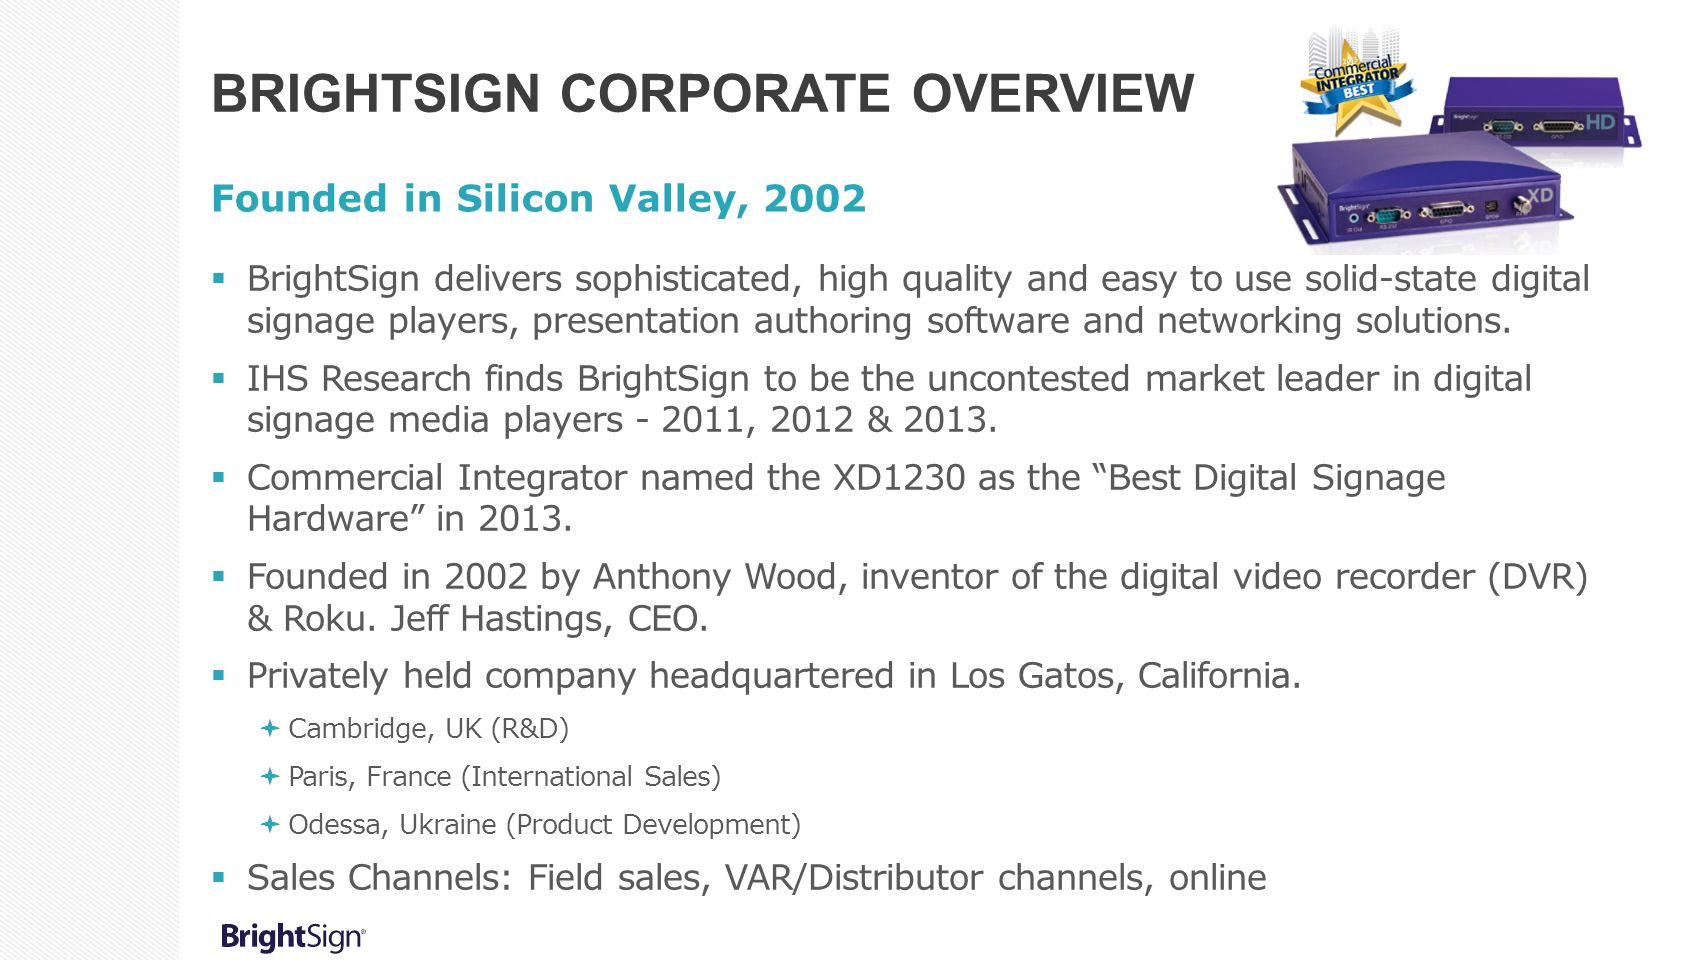 BrightSign corporate overview